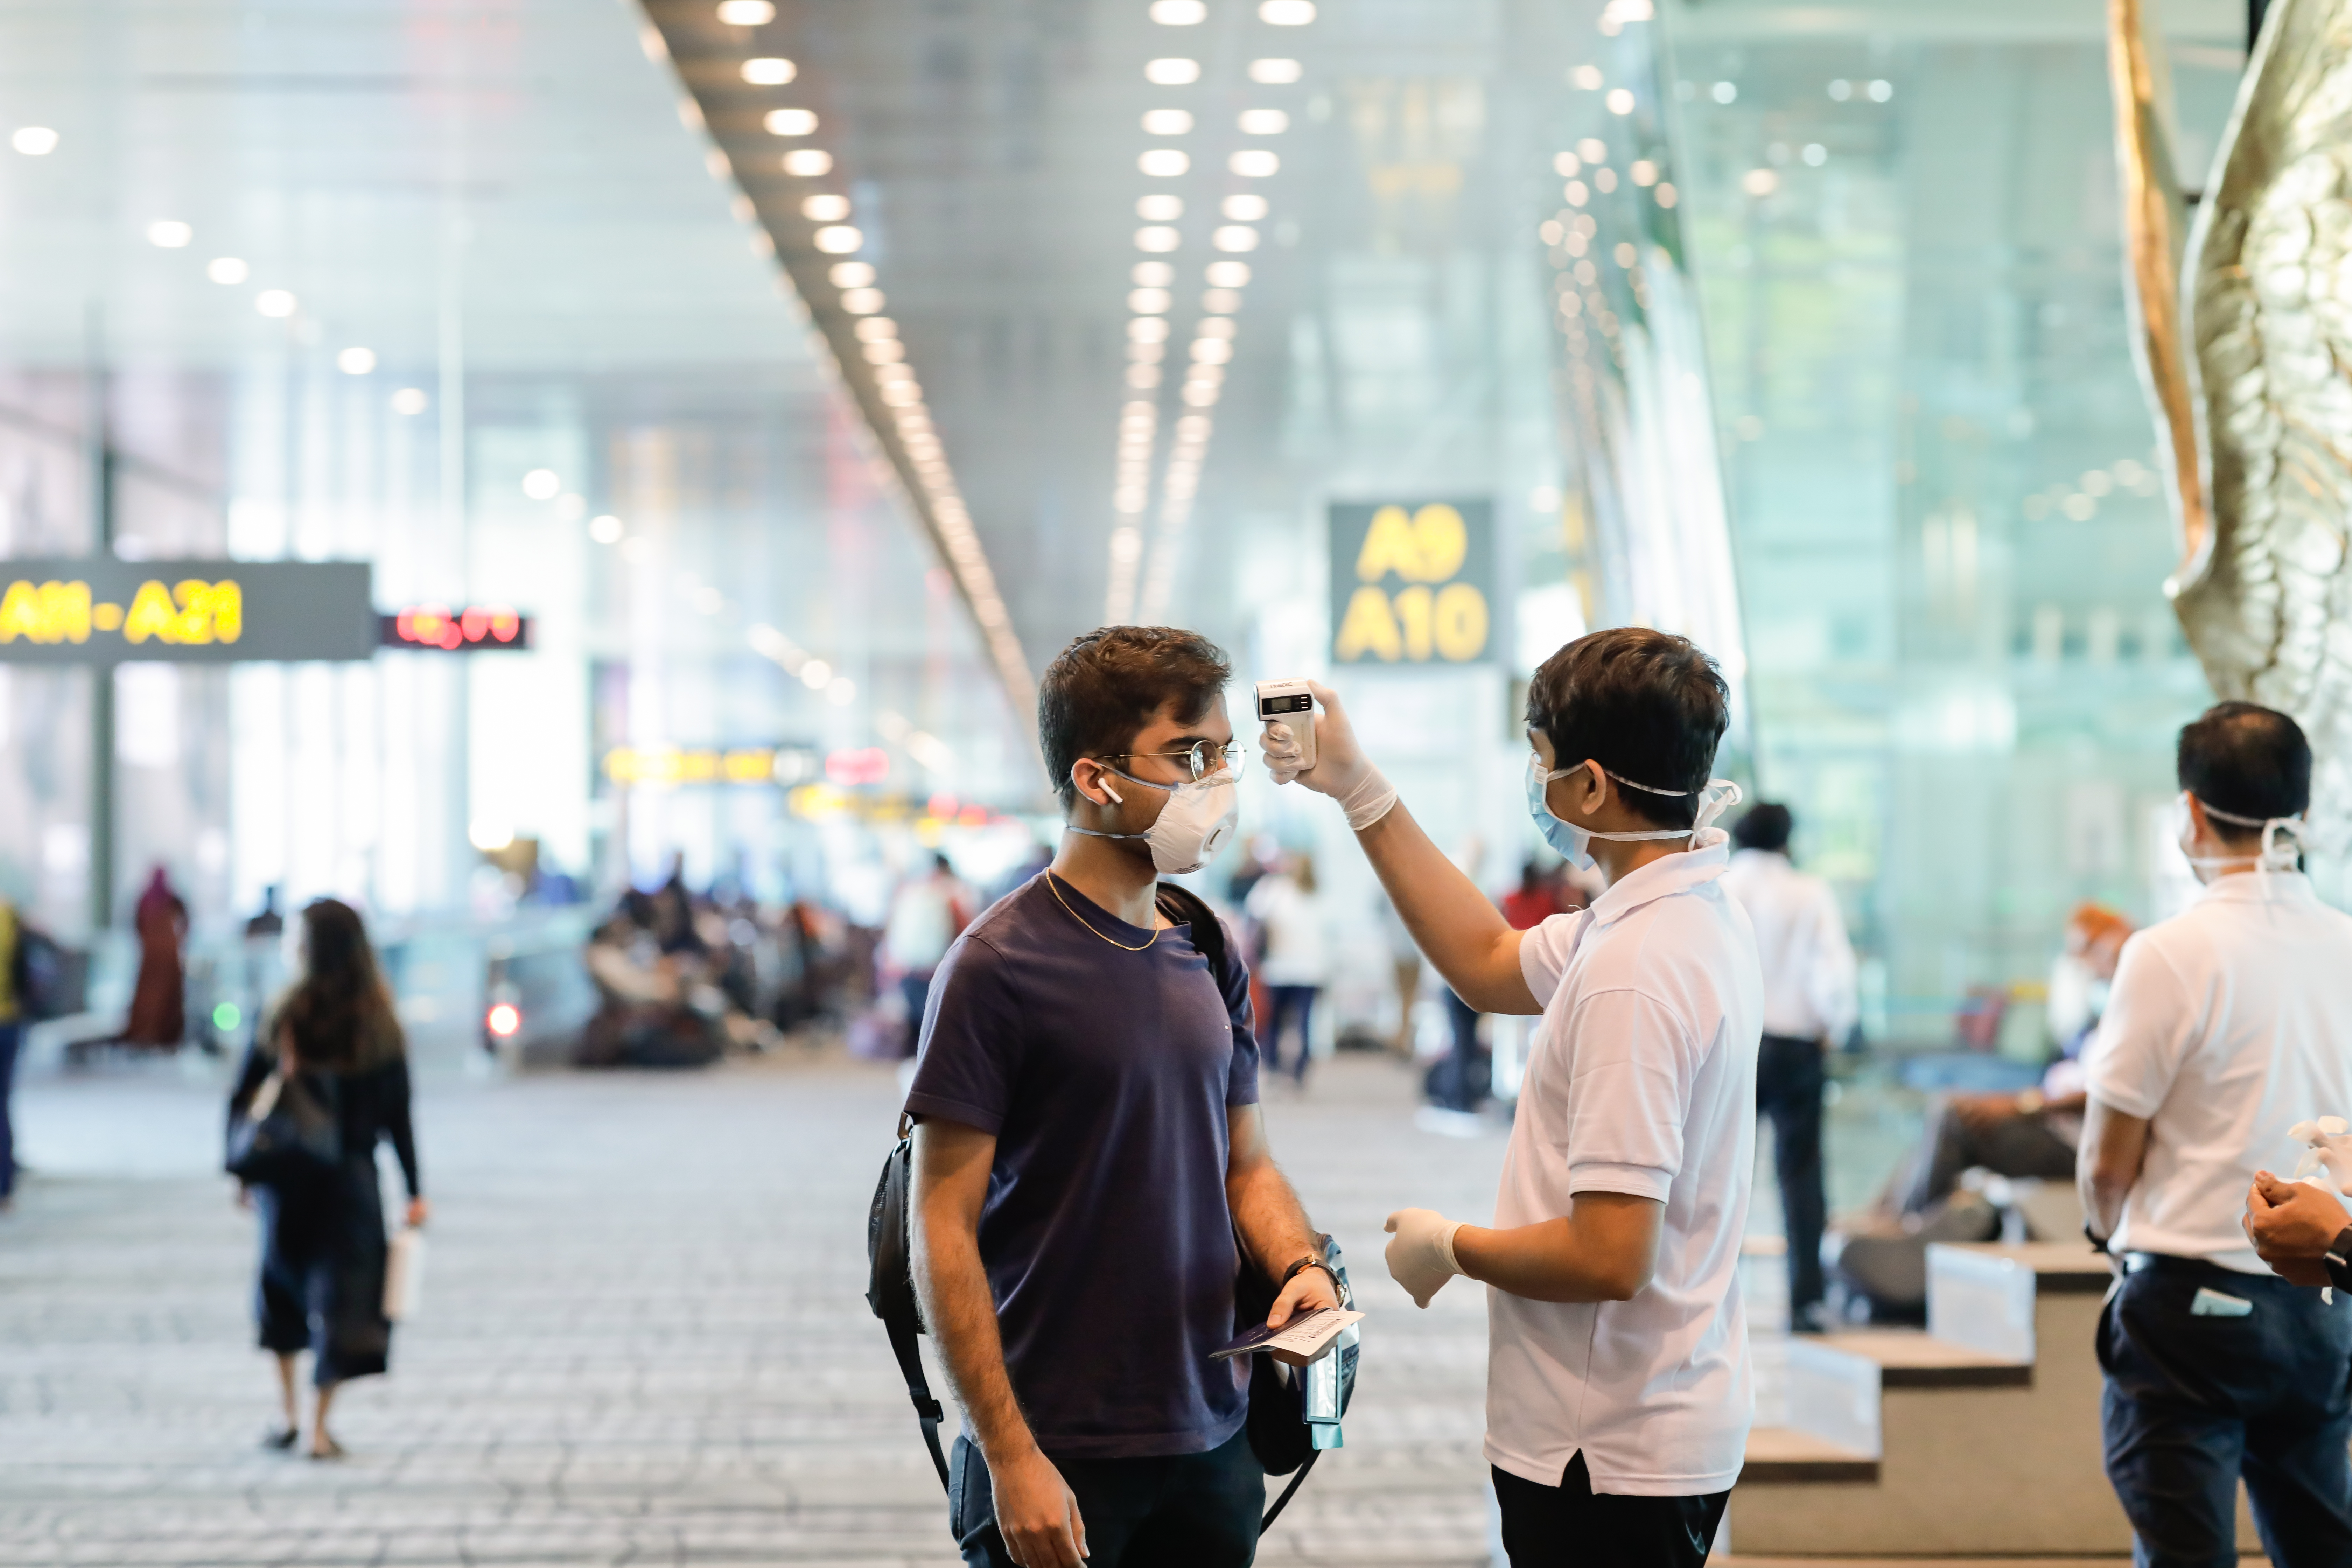 Singapore plans to open vaccinated travel lanes with selected countries, where frequent testing may replace mandatory stay-home rules on arrival.